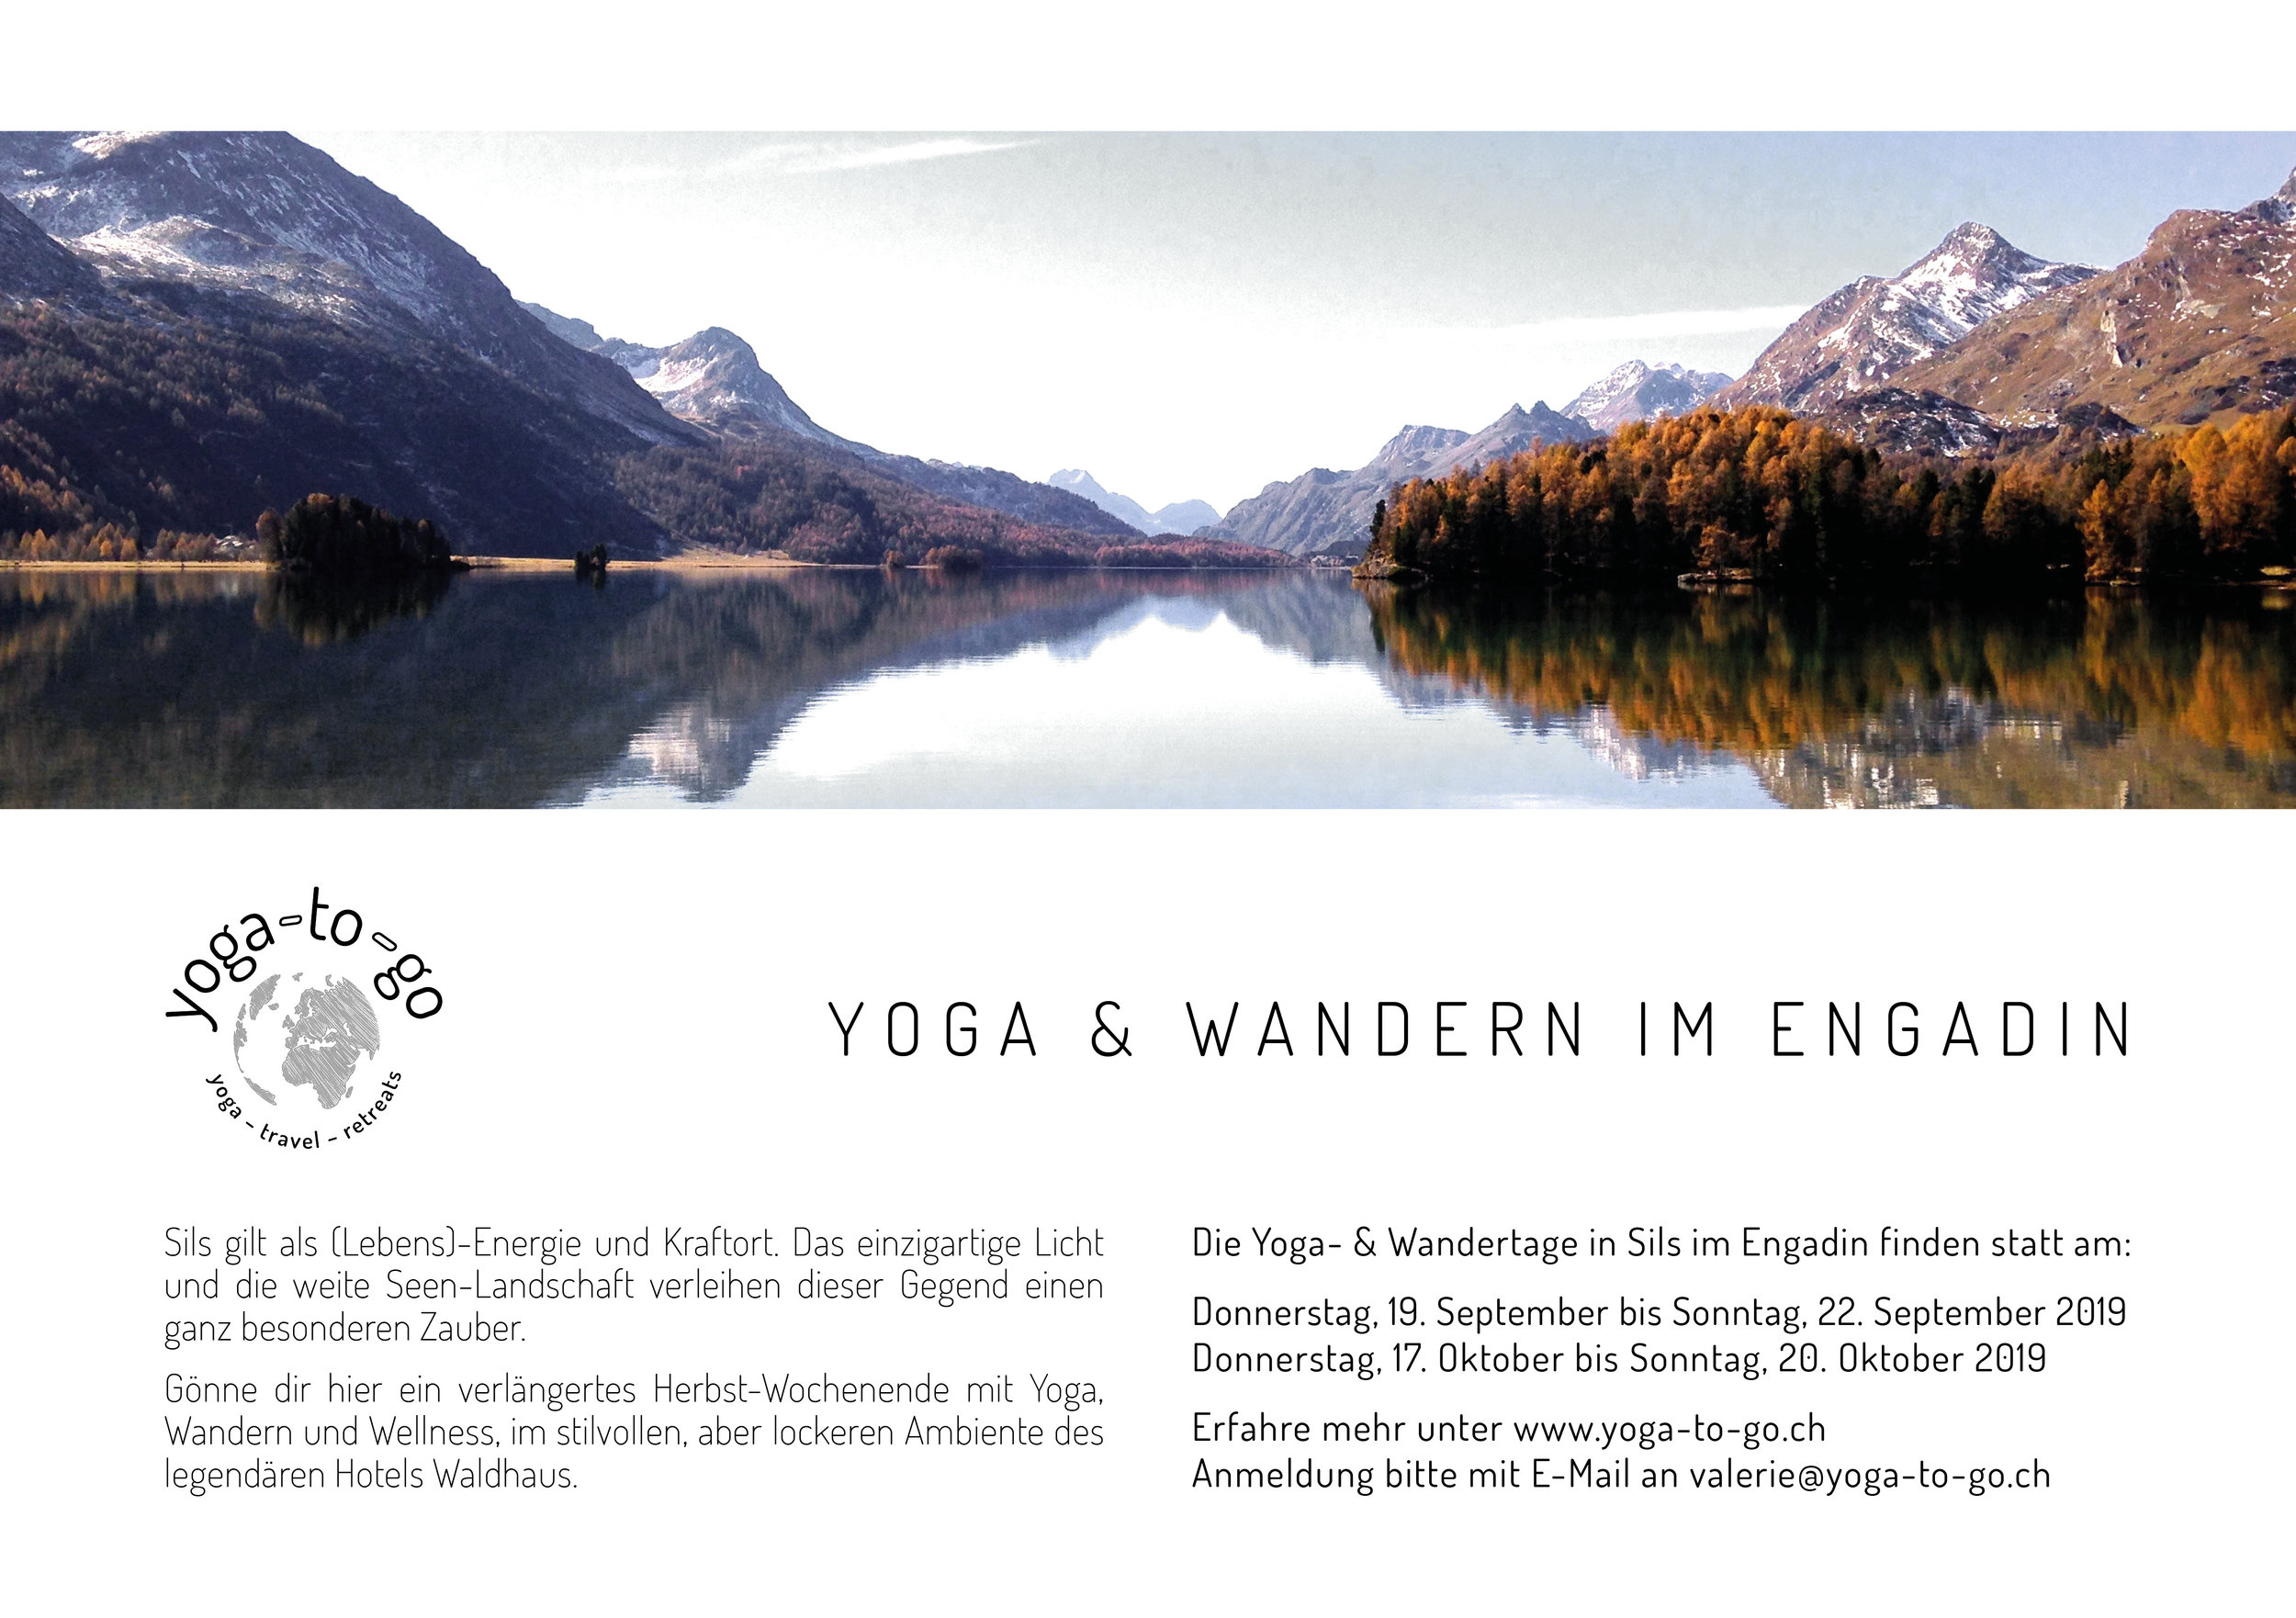 Flyer_yoga to go_Engadin2019.jpg